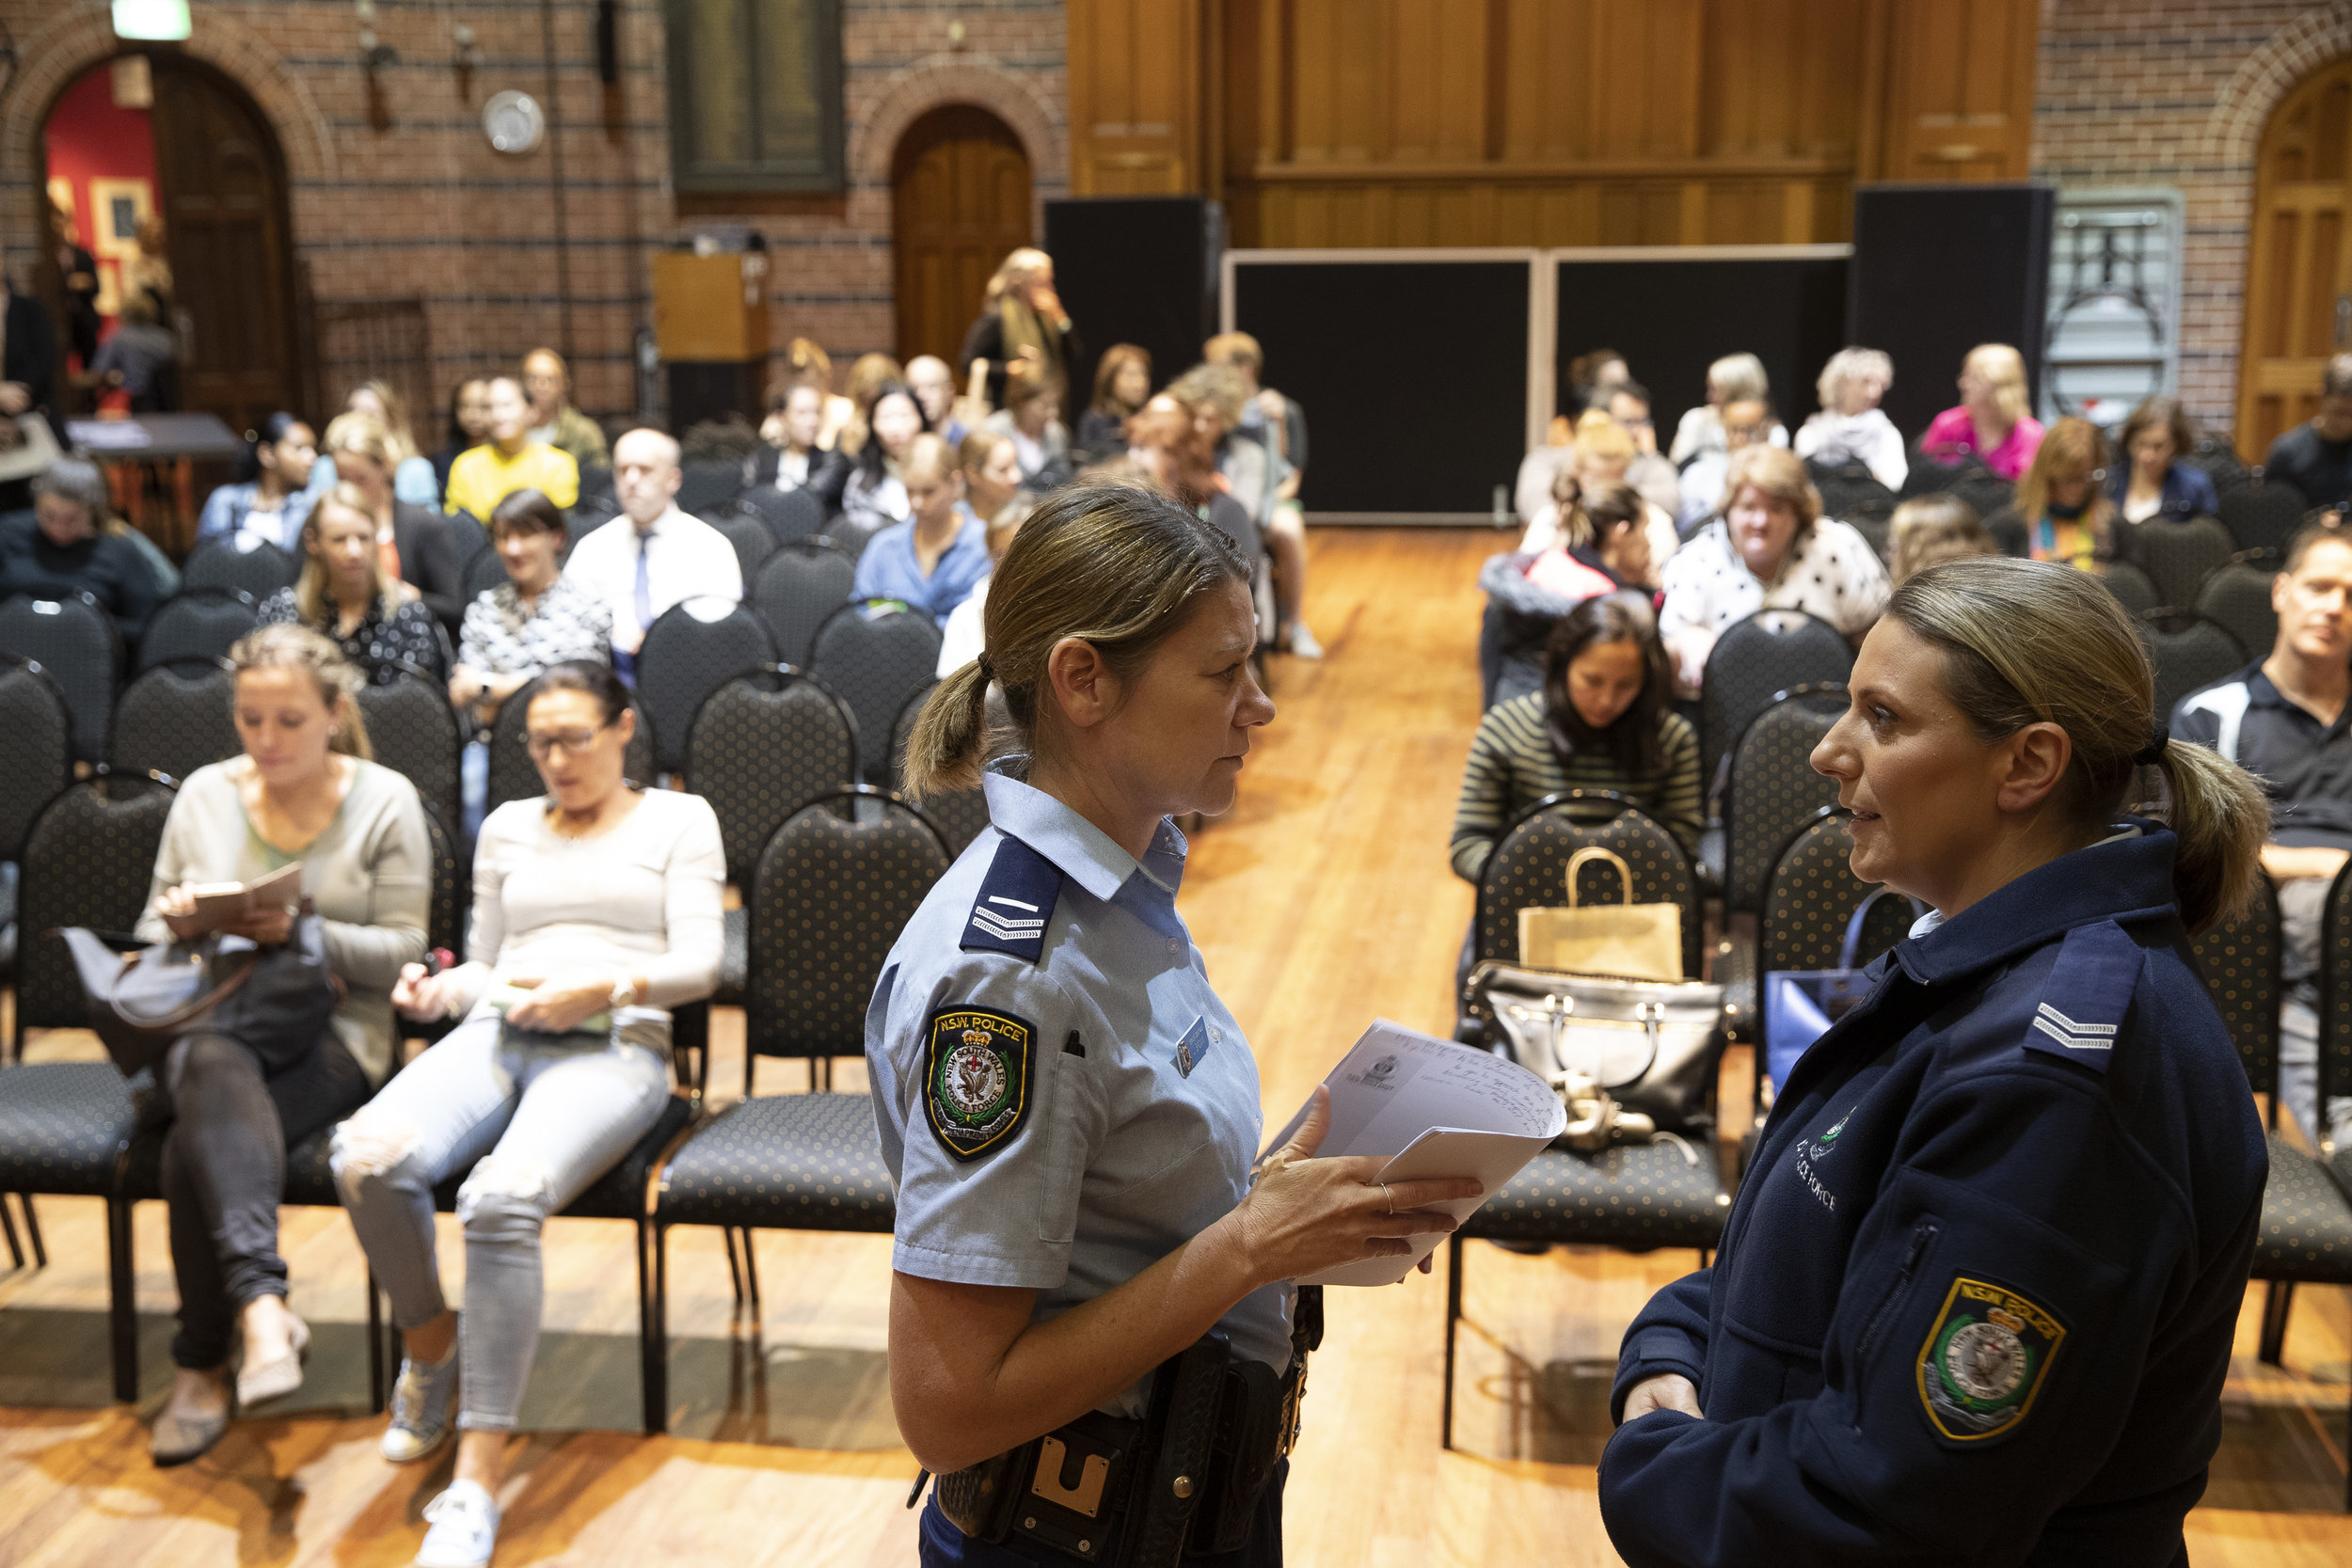 Police officers Jenni Brown and Misty Boss at Mosman Art Gallery last night.